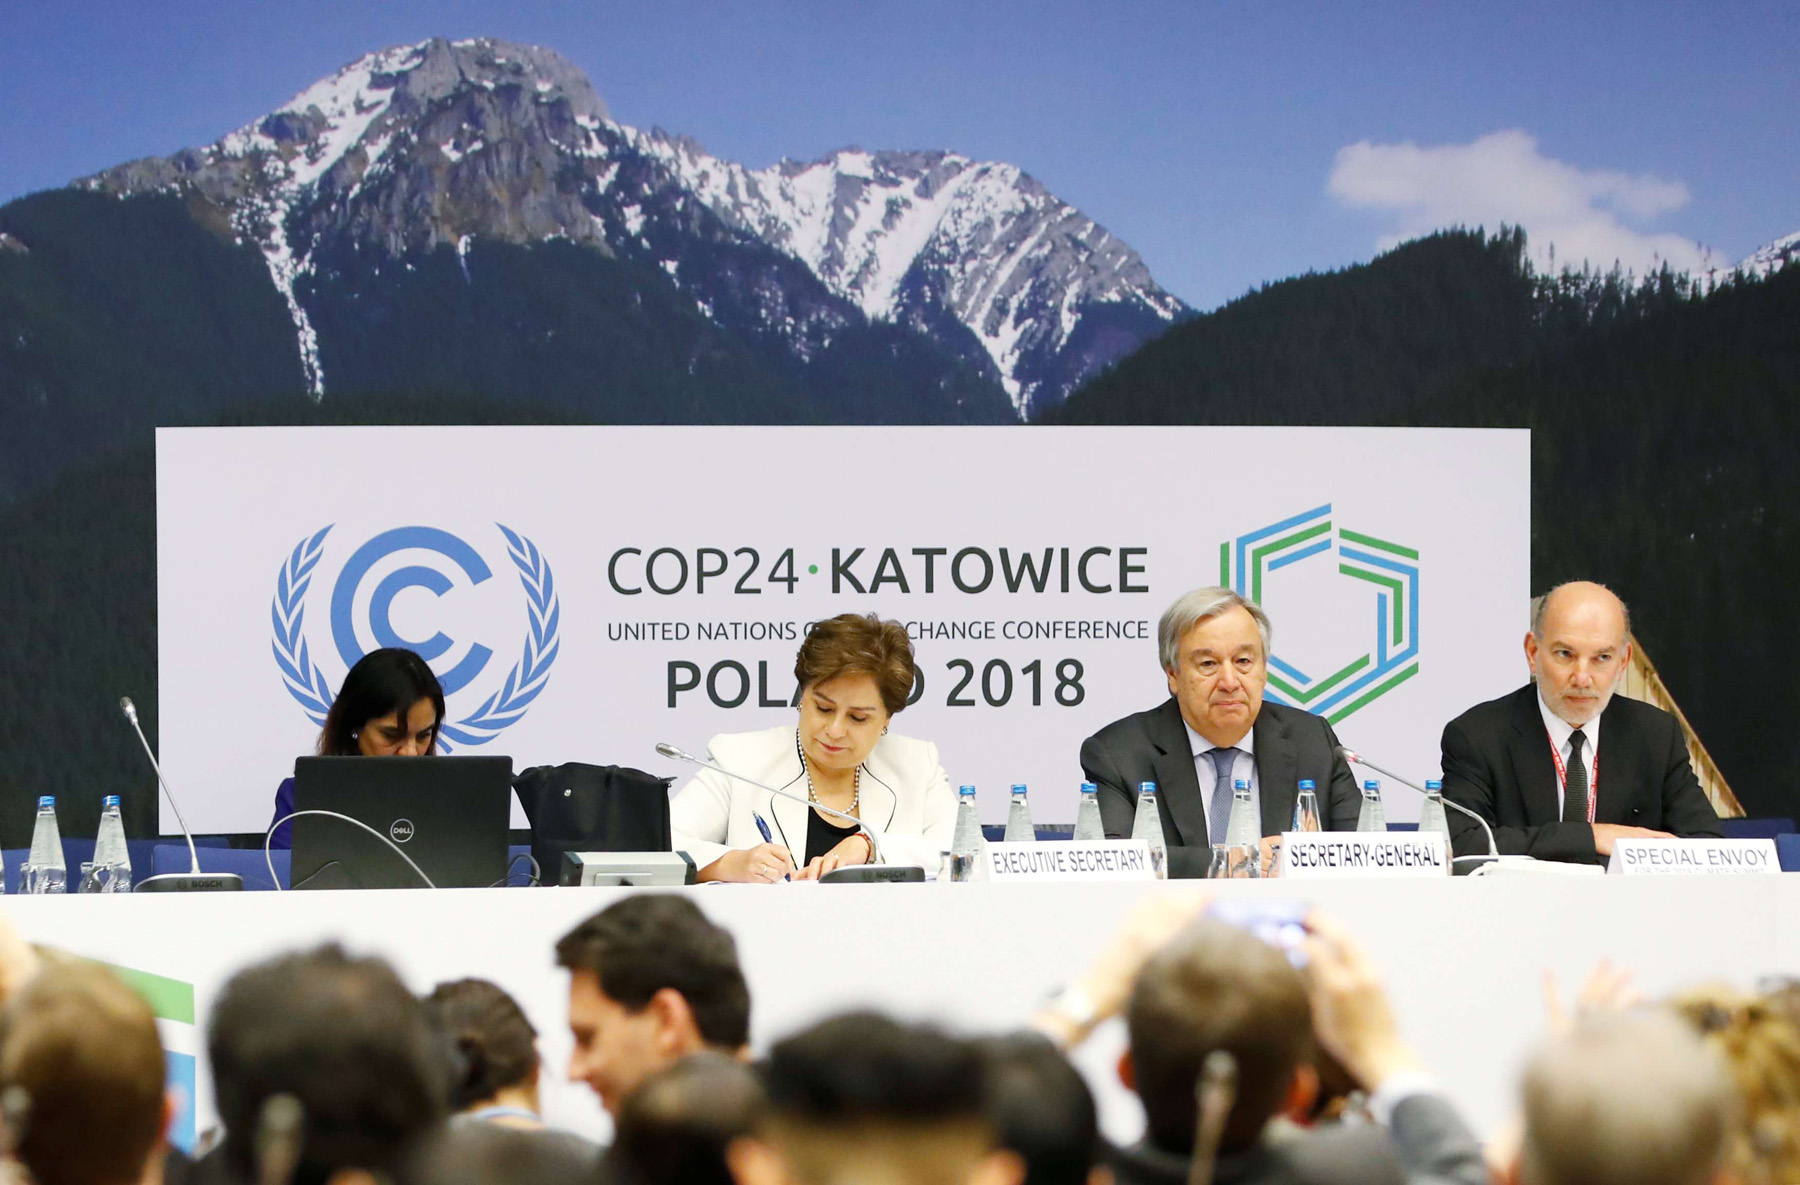 UN Secretary General Antonio Guterres, executive secretary of the UN Framework Convention on Climate Change Patricia Espinosa and UN Special Envoy for the 2019 climate summit Luis Alfonso de Alba at the COP24 UN Climate Change Conference 2018. (Reuters)